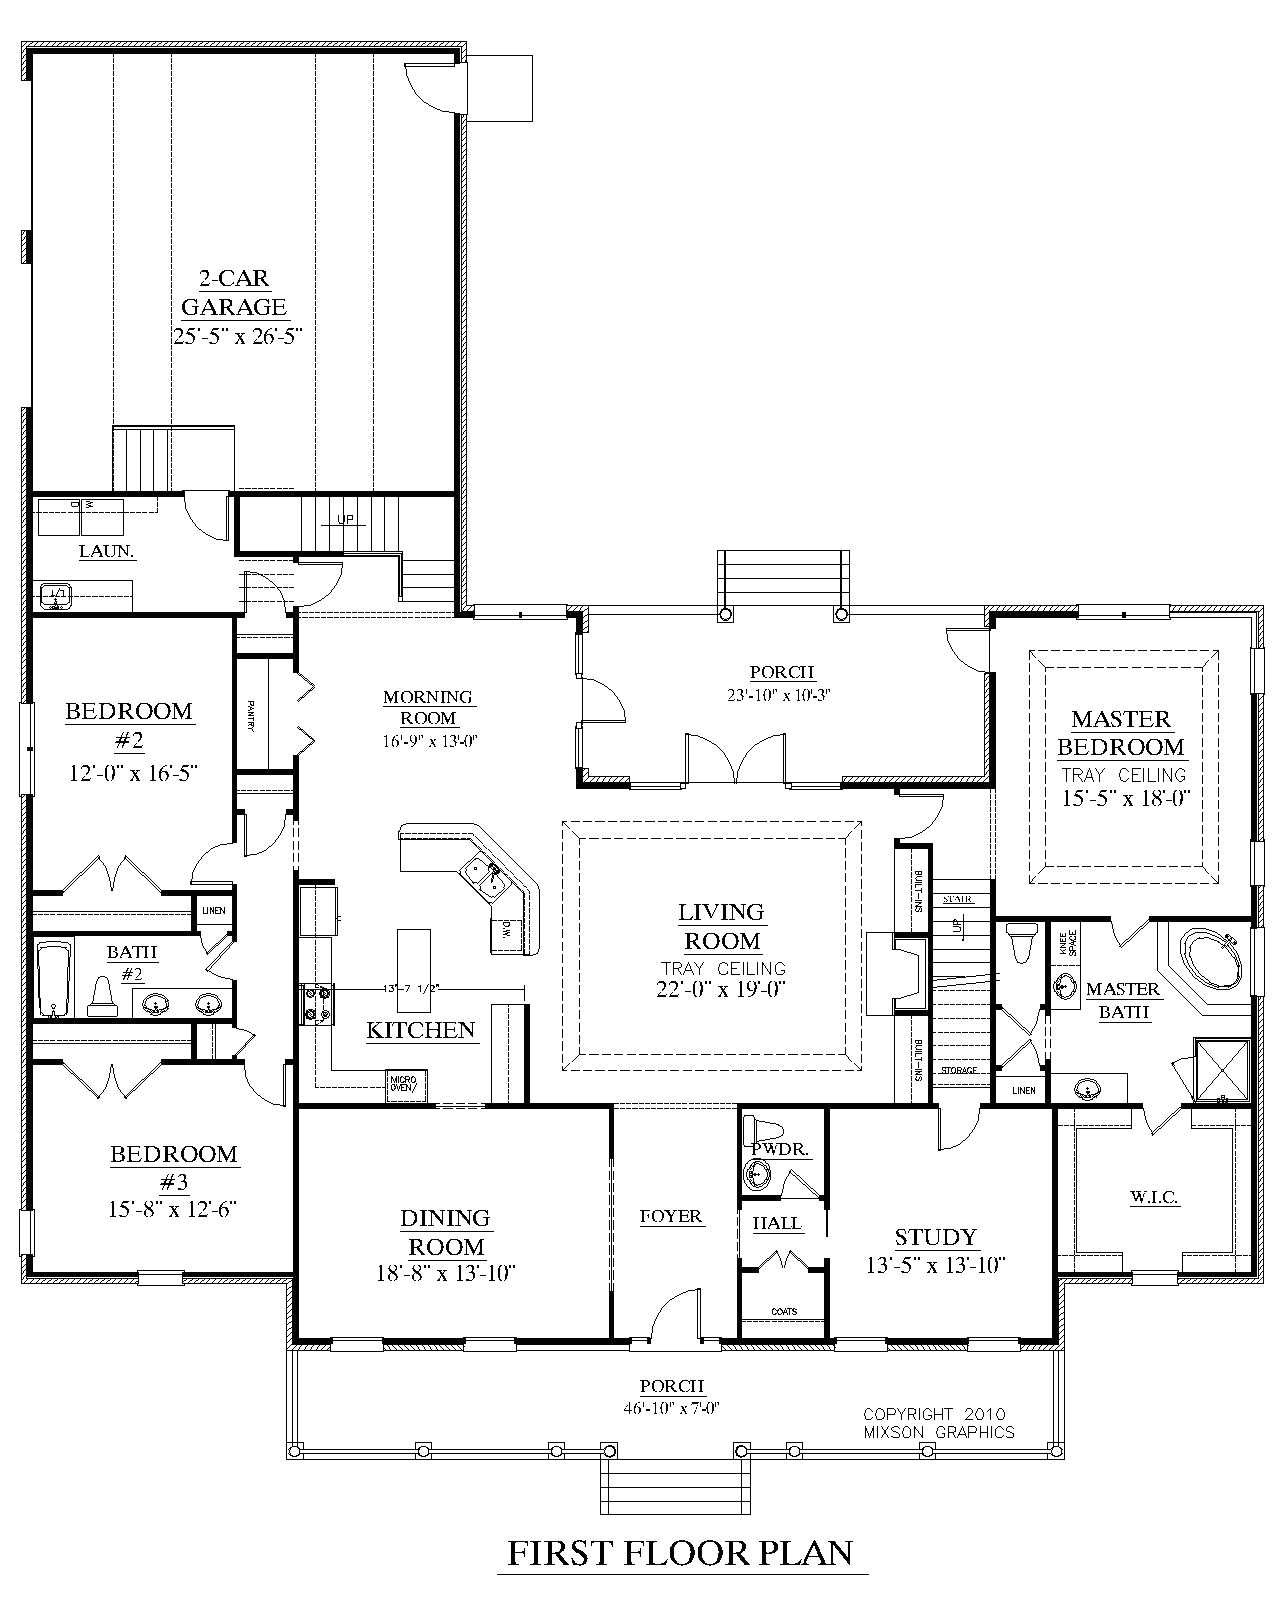 house plan image floors 2018 ideas plans inspirational simple bedroom floor ranch style beds of including stunning small